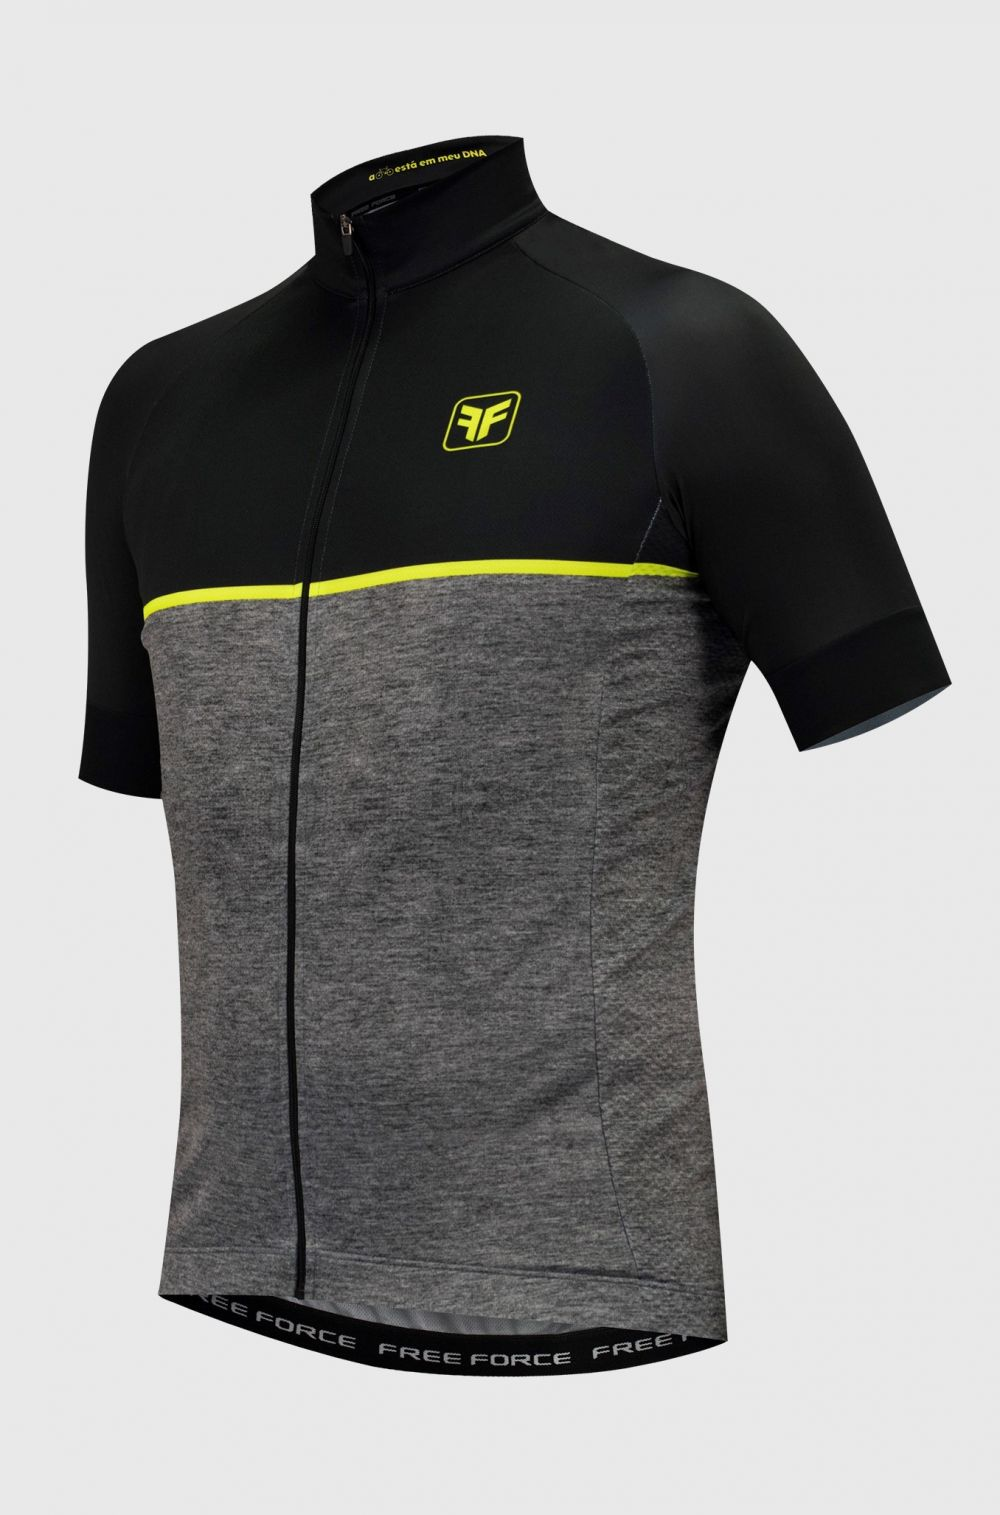 CAMISA FREE FORCE SPORT - FIRST (MANGA CURTA)